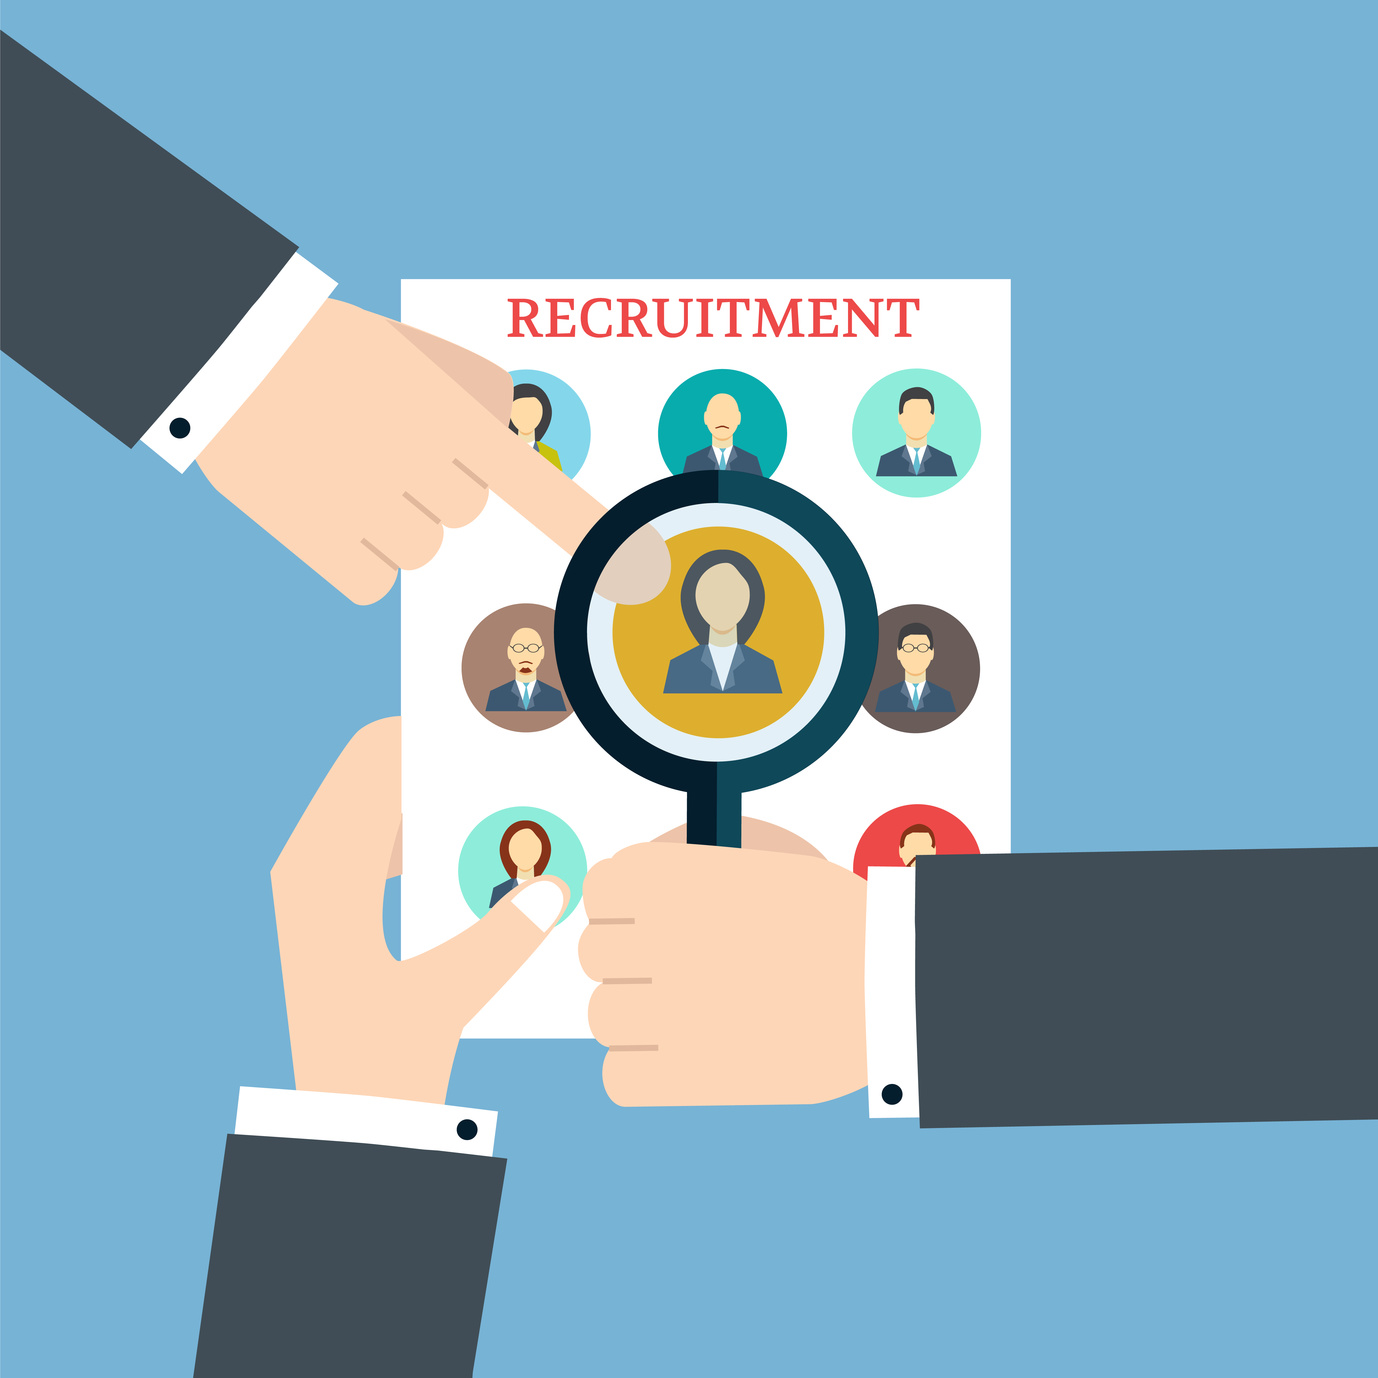 seo tips to make your recruitment stand out